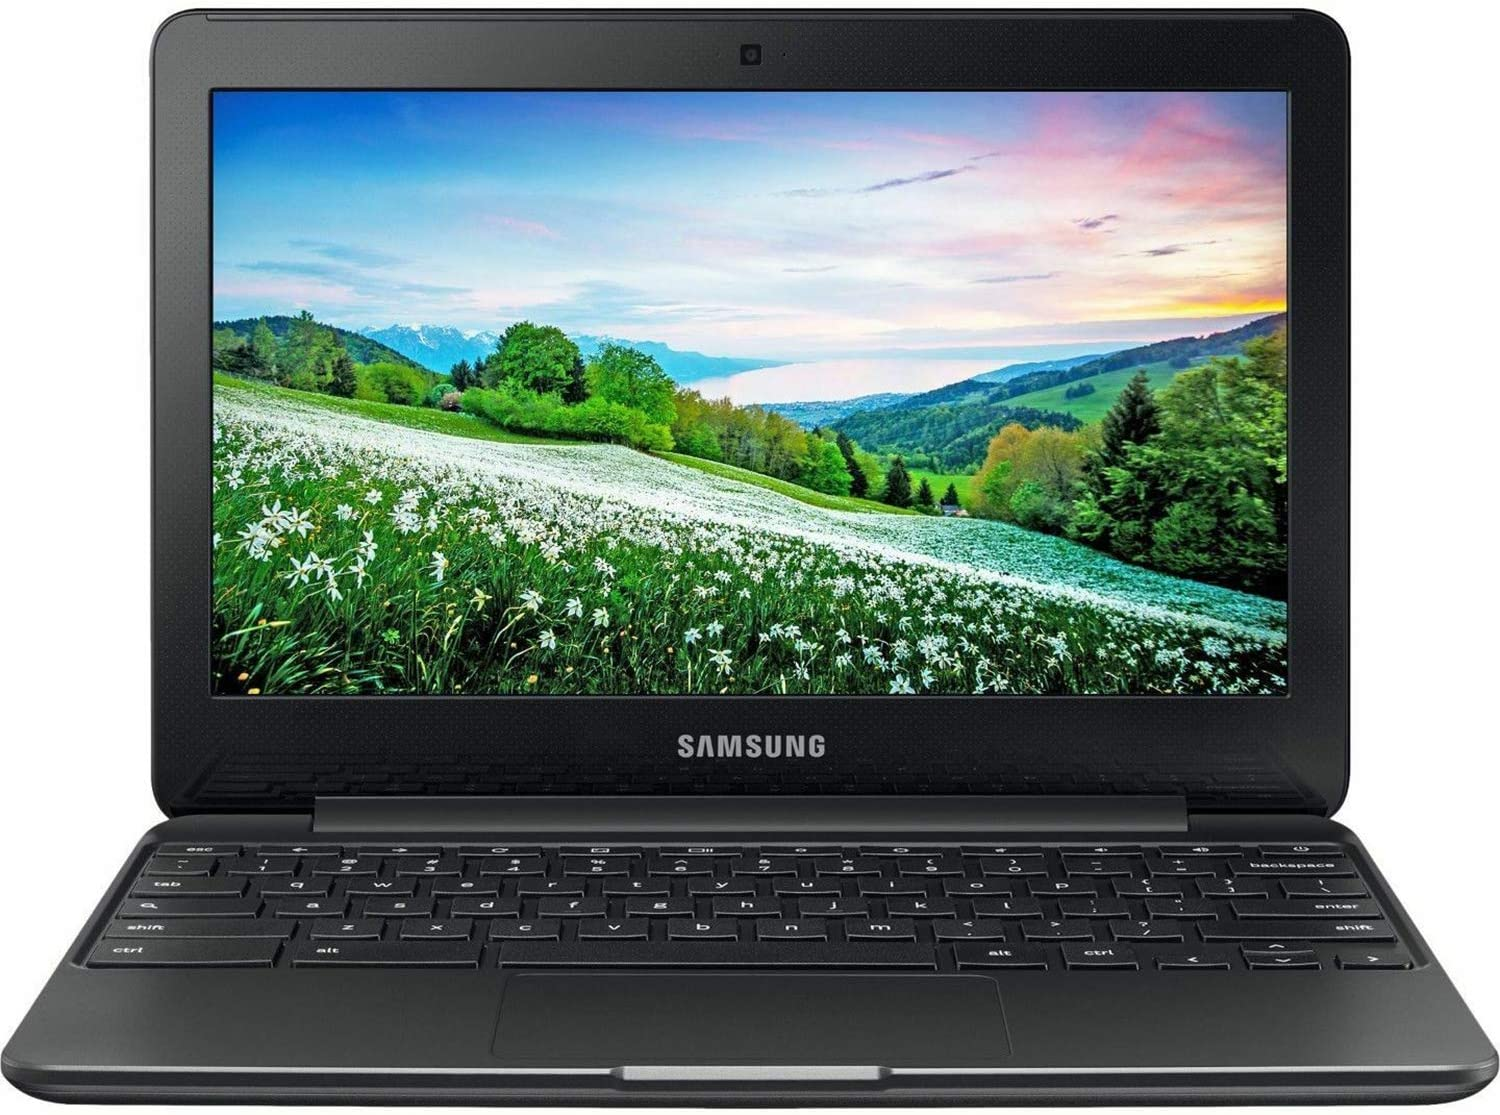 Laptops under 200 Dollars